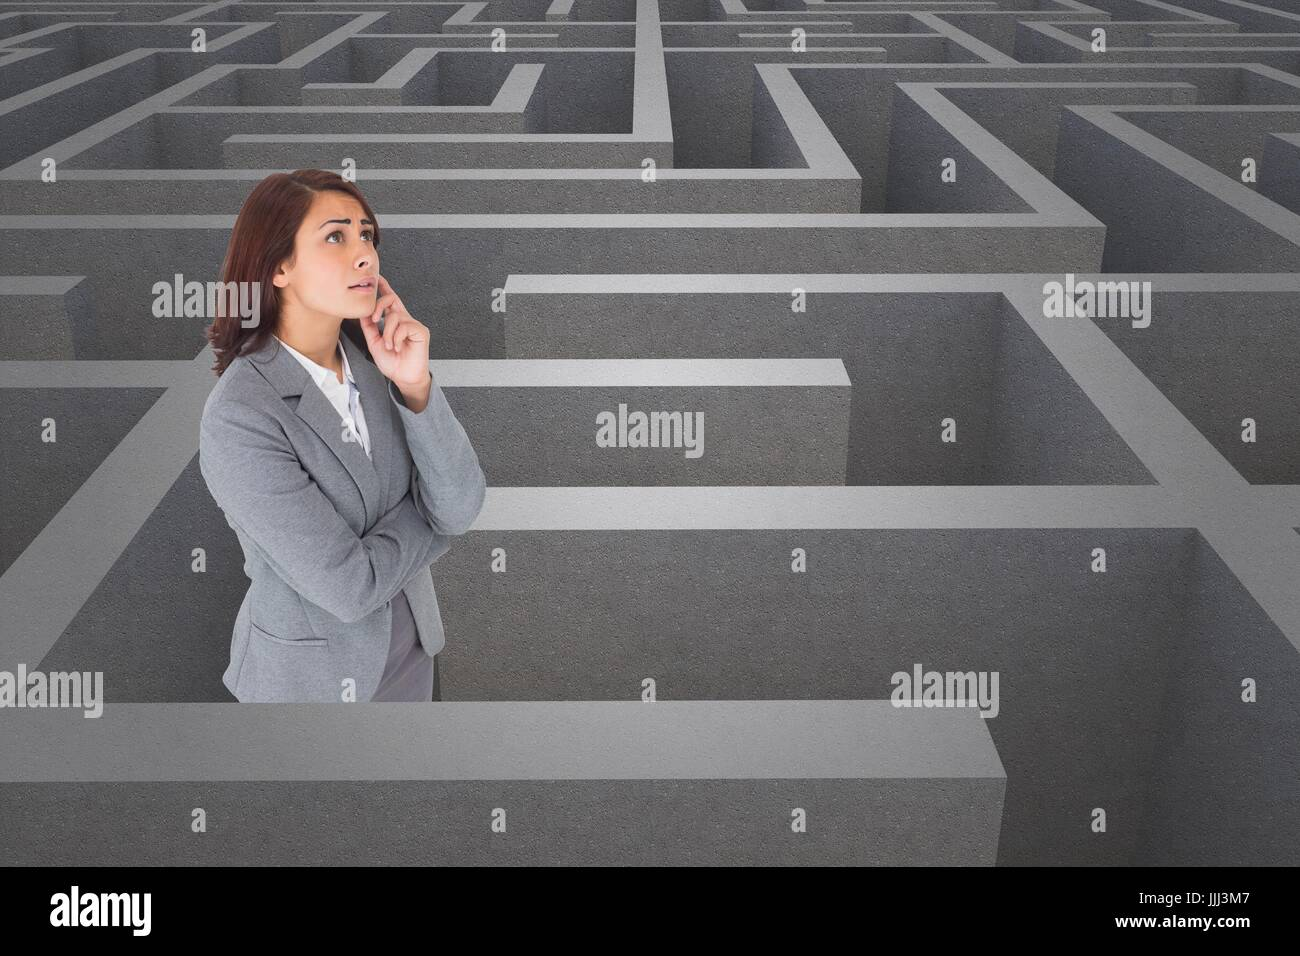 Woman thinking in a 3d maze - Stock Image